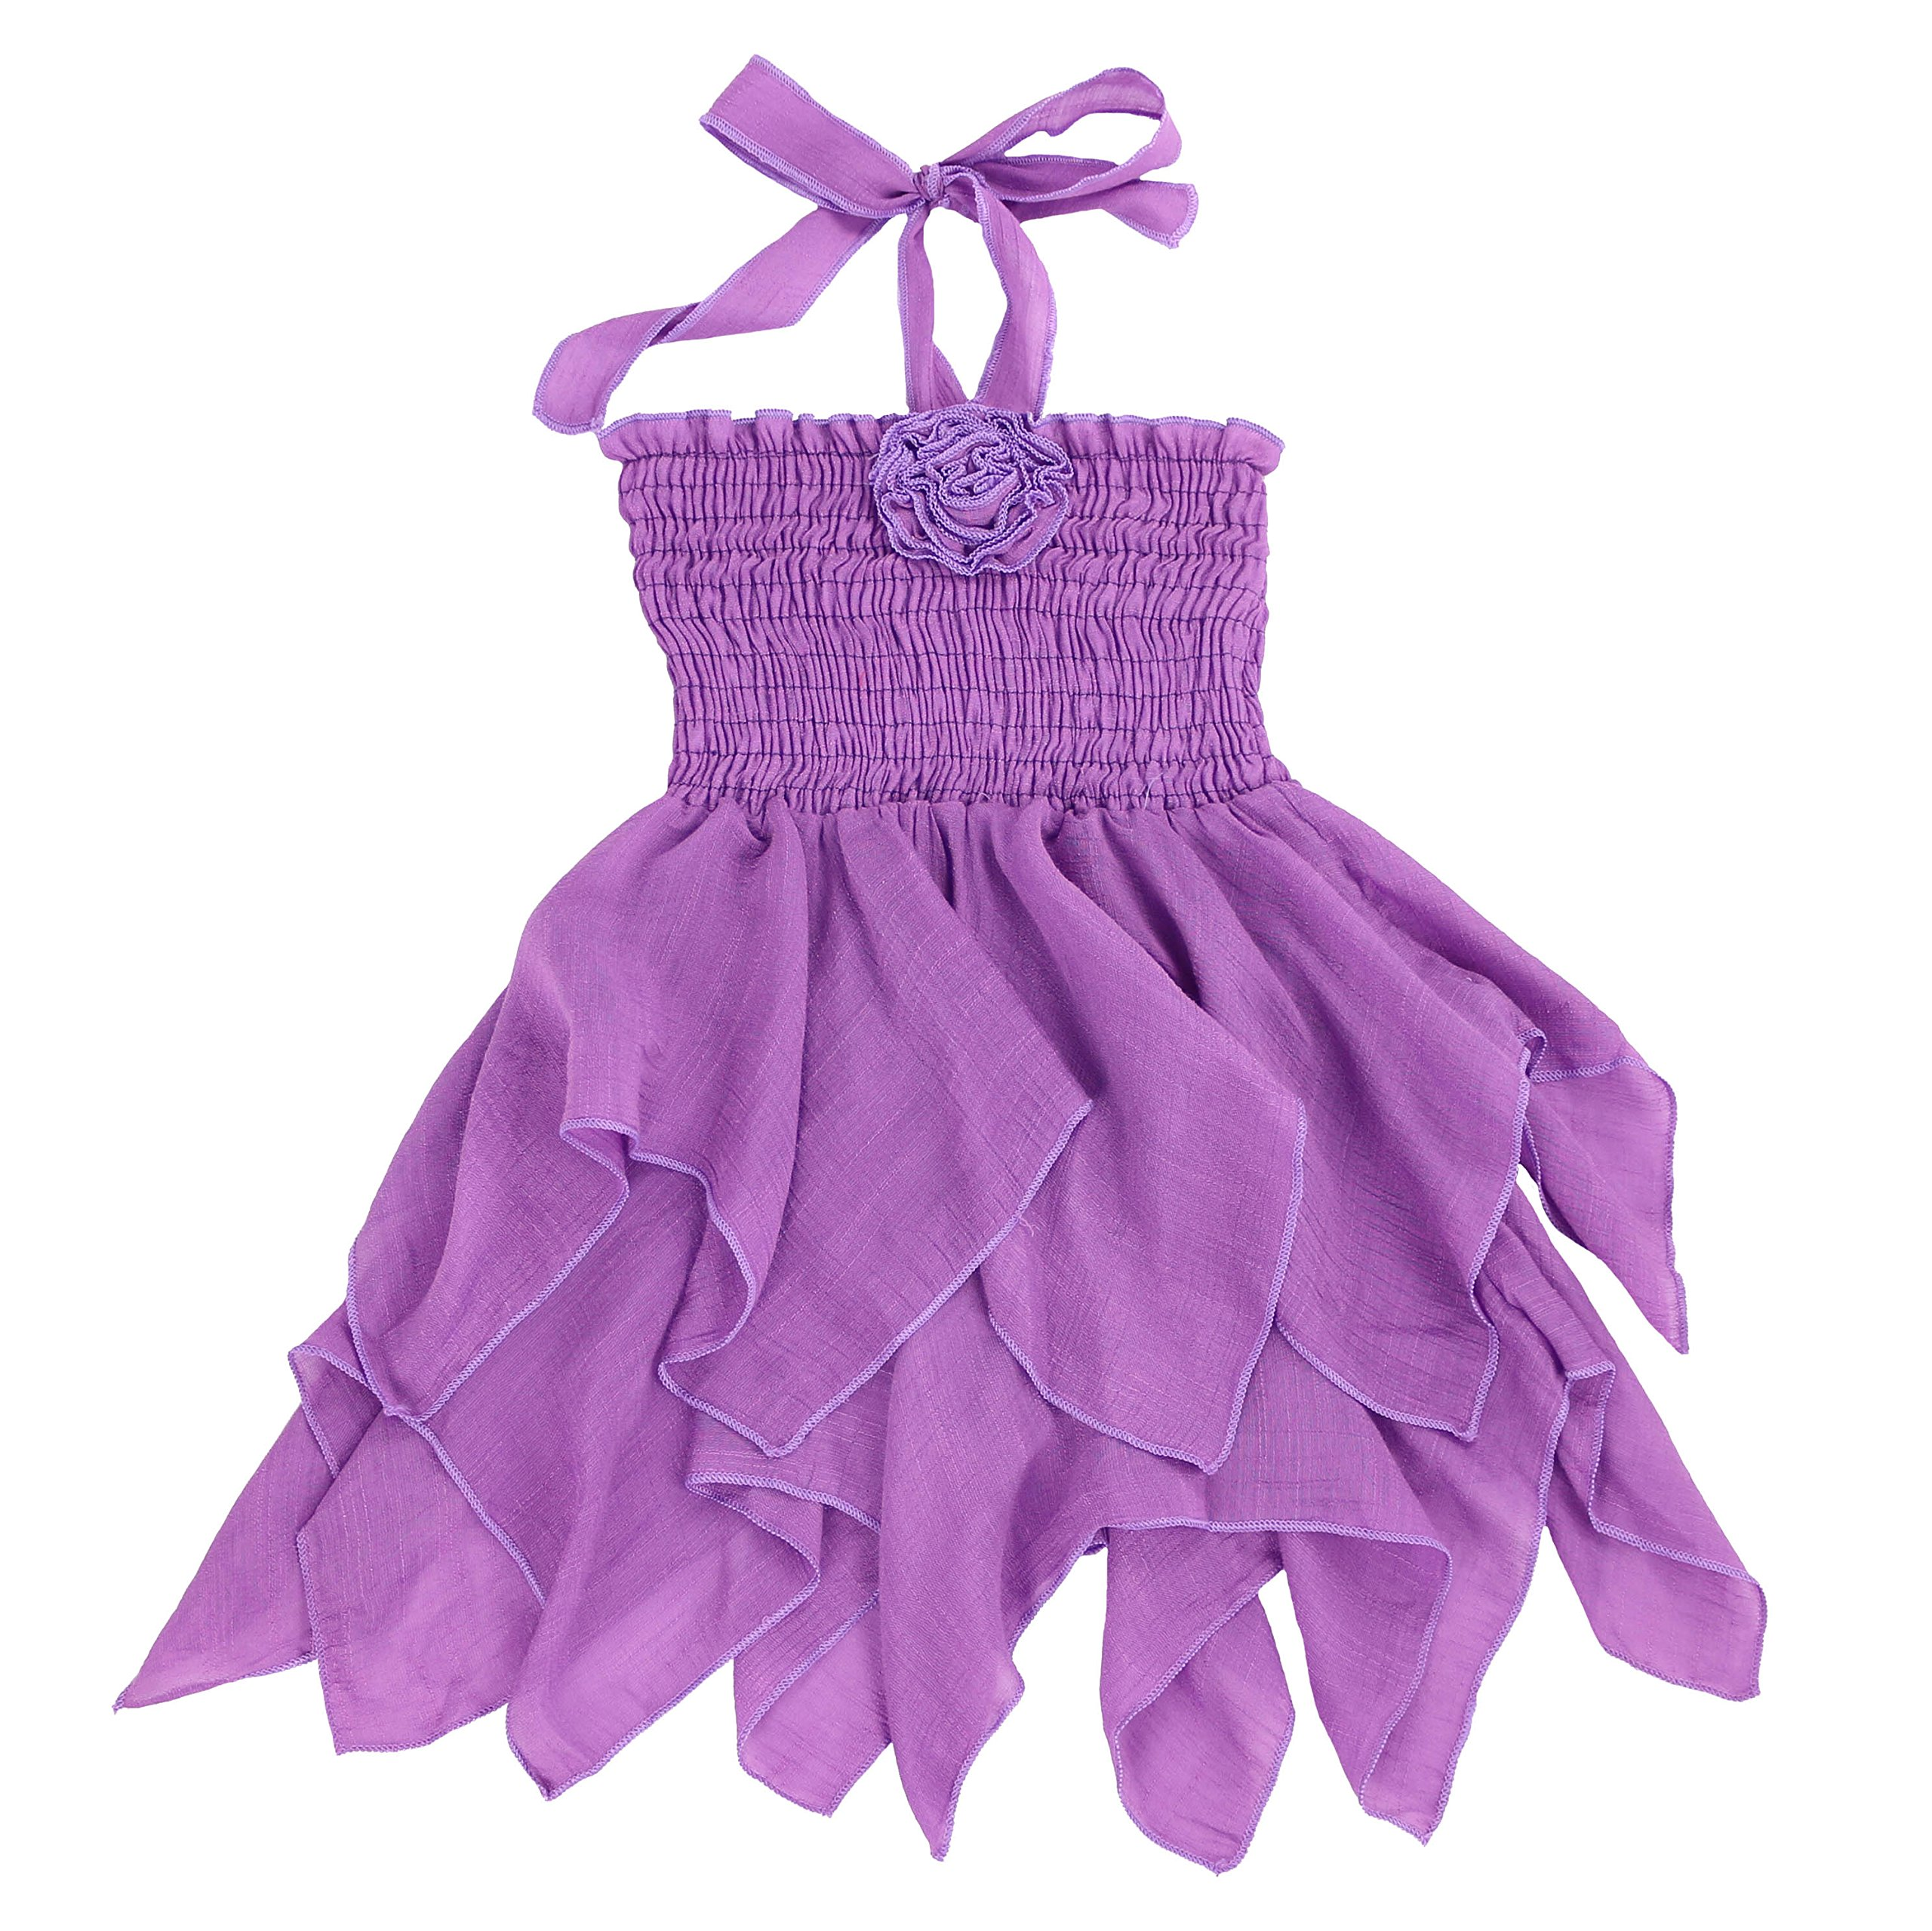 LELEFORKIDS - Toddlers and Girls Light Cotton Halter Mermaid Double Handkerchief Je T'Aime Dress in Lilac Size 6X